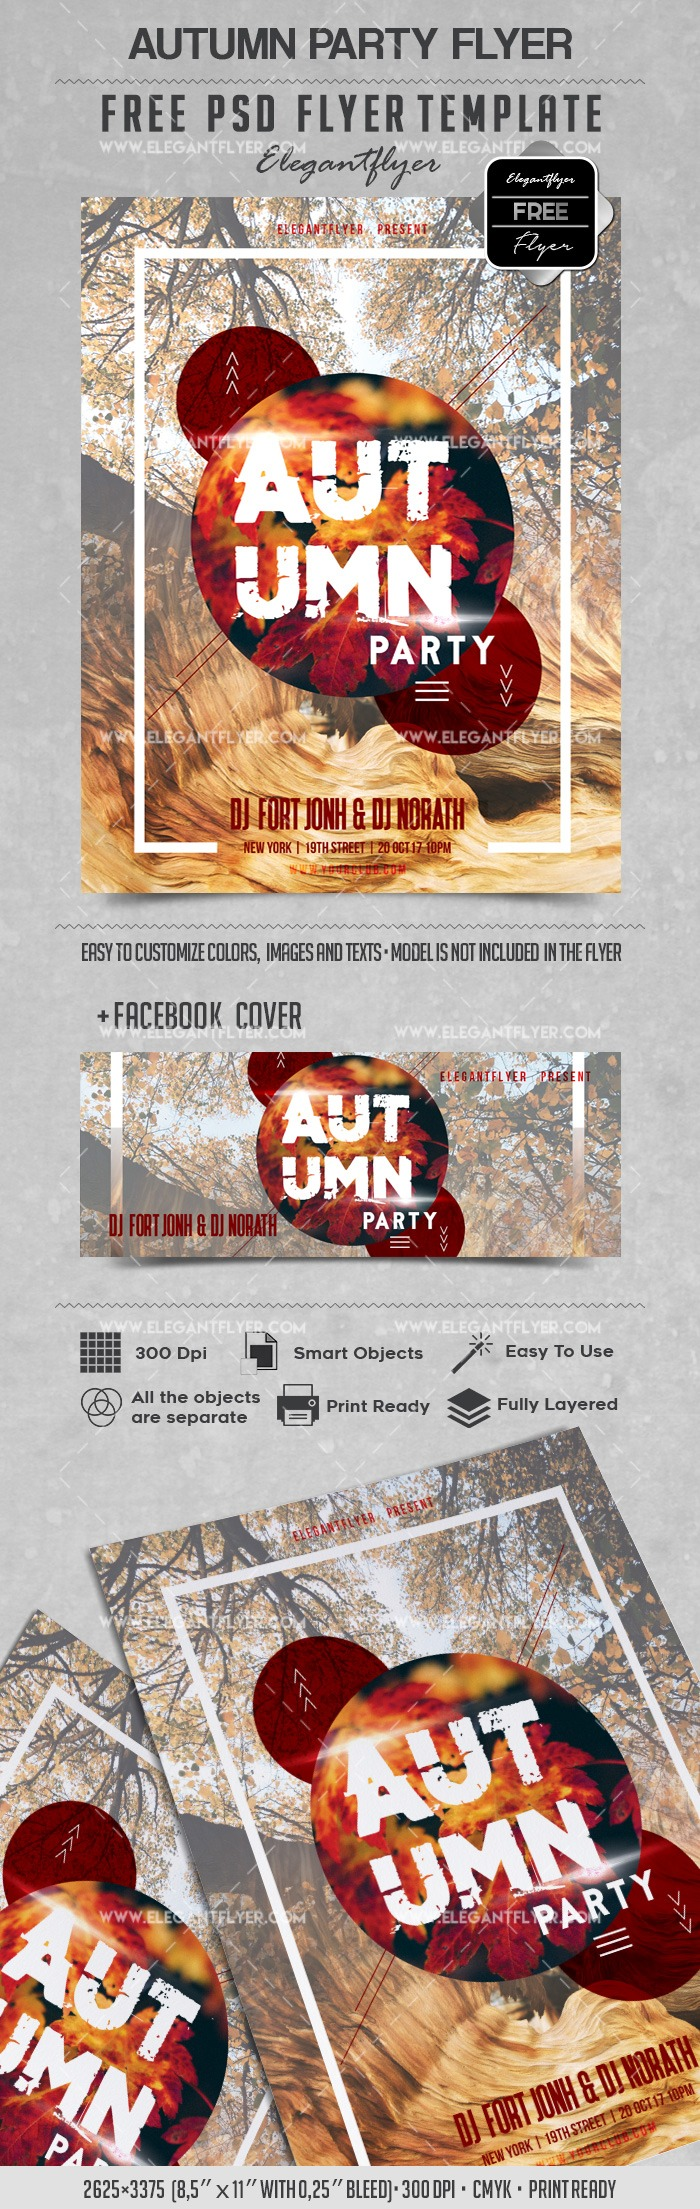 Free Flyer for Autumn Trees Party